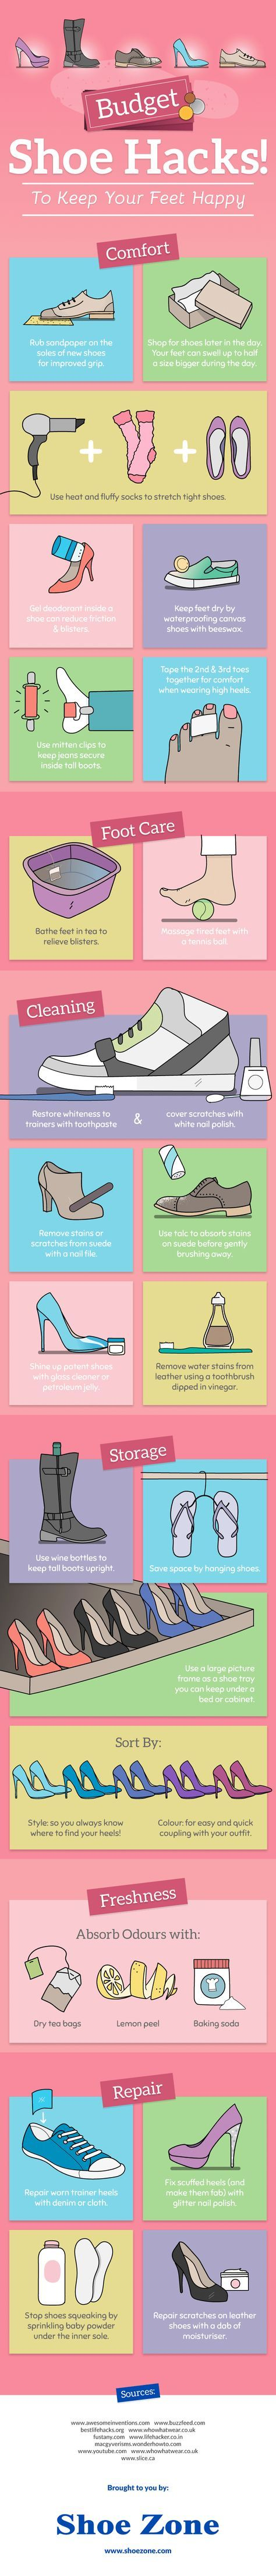 Shoe Hacks that will make your feet smile